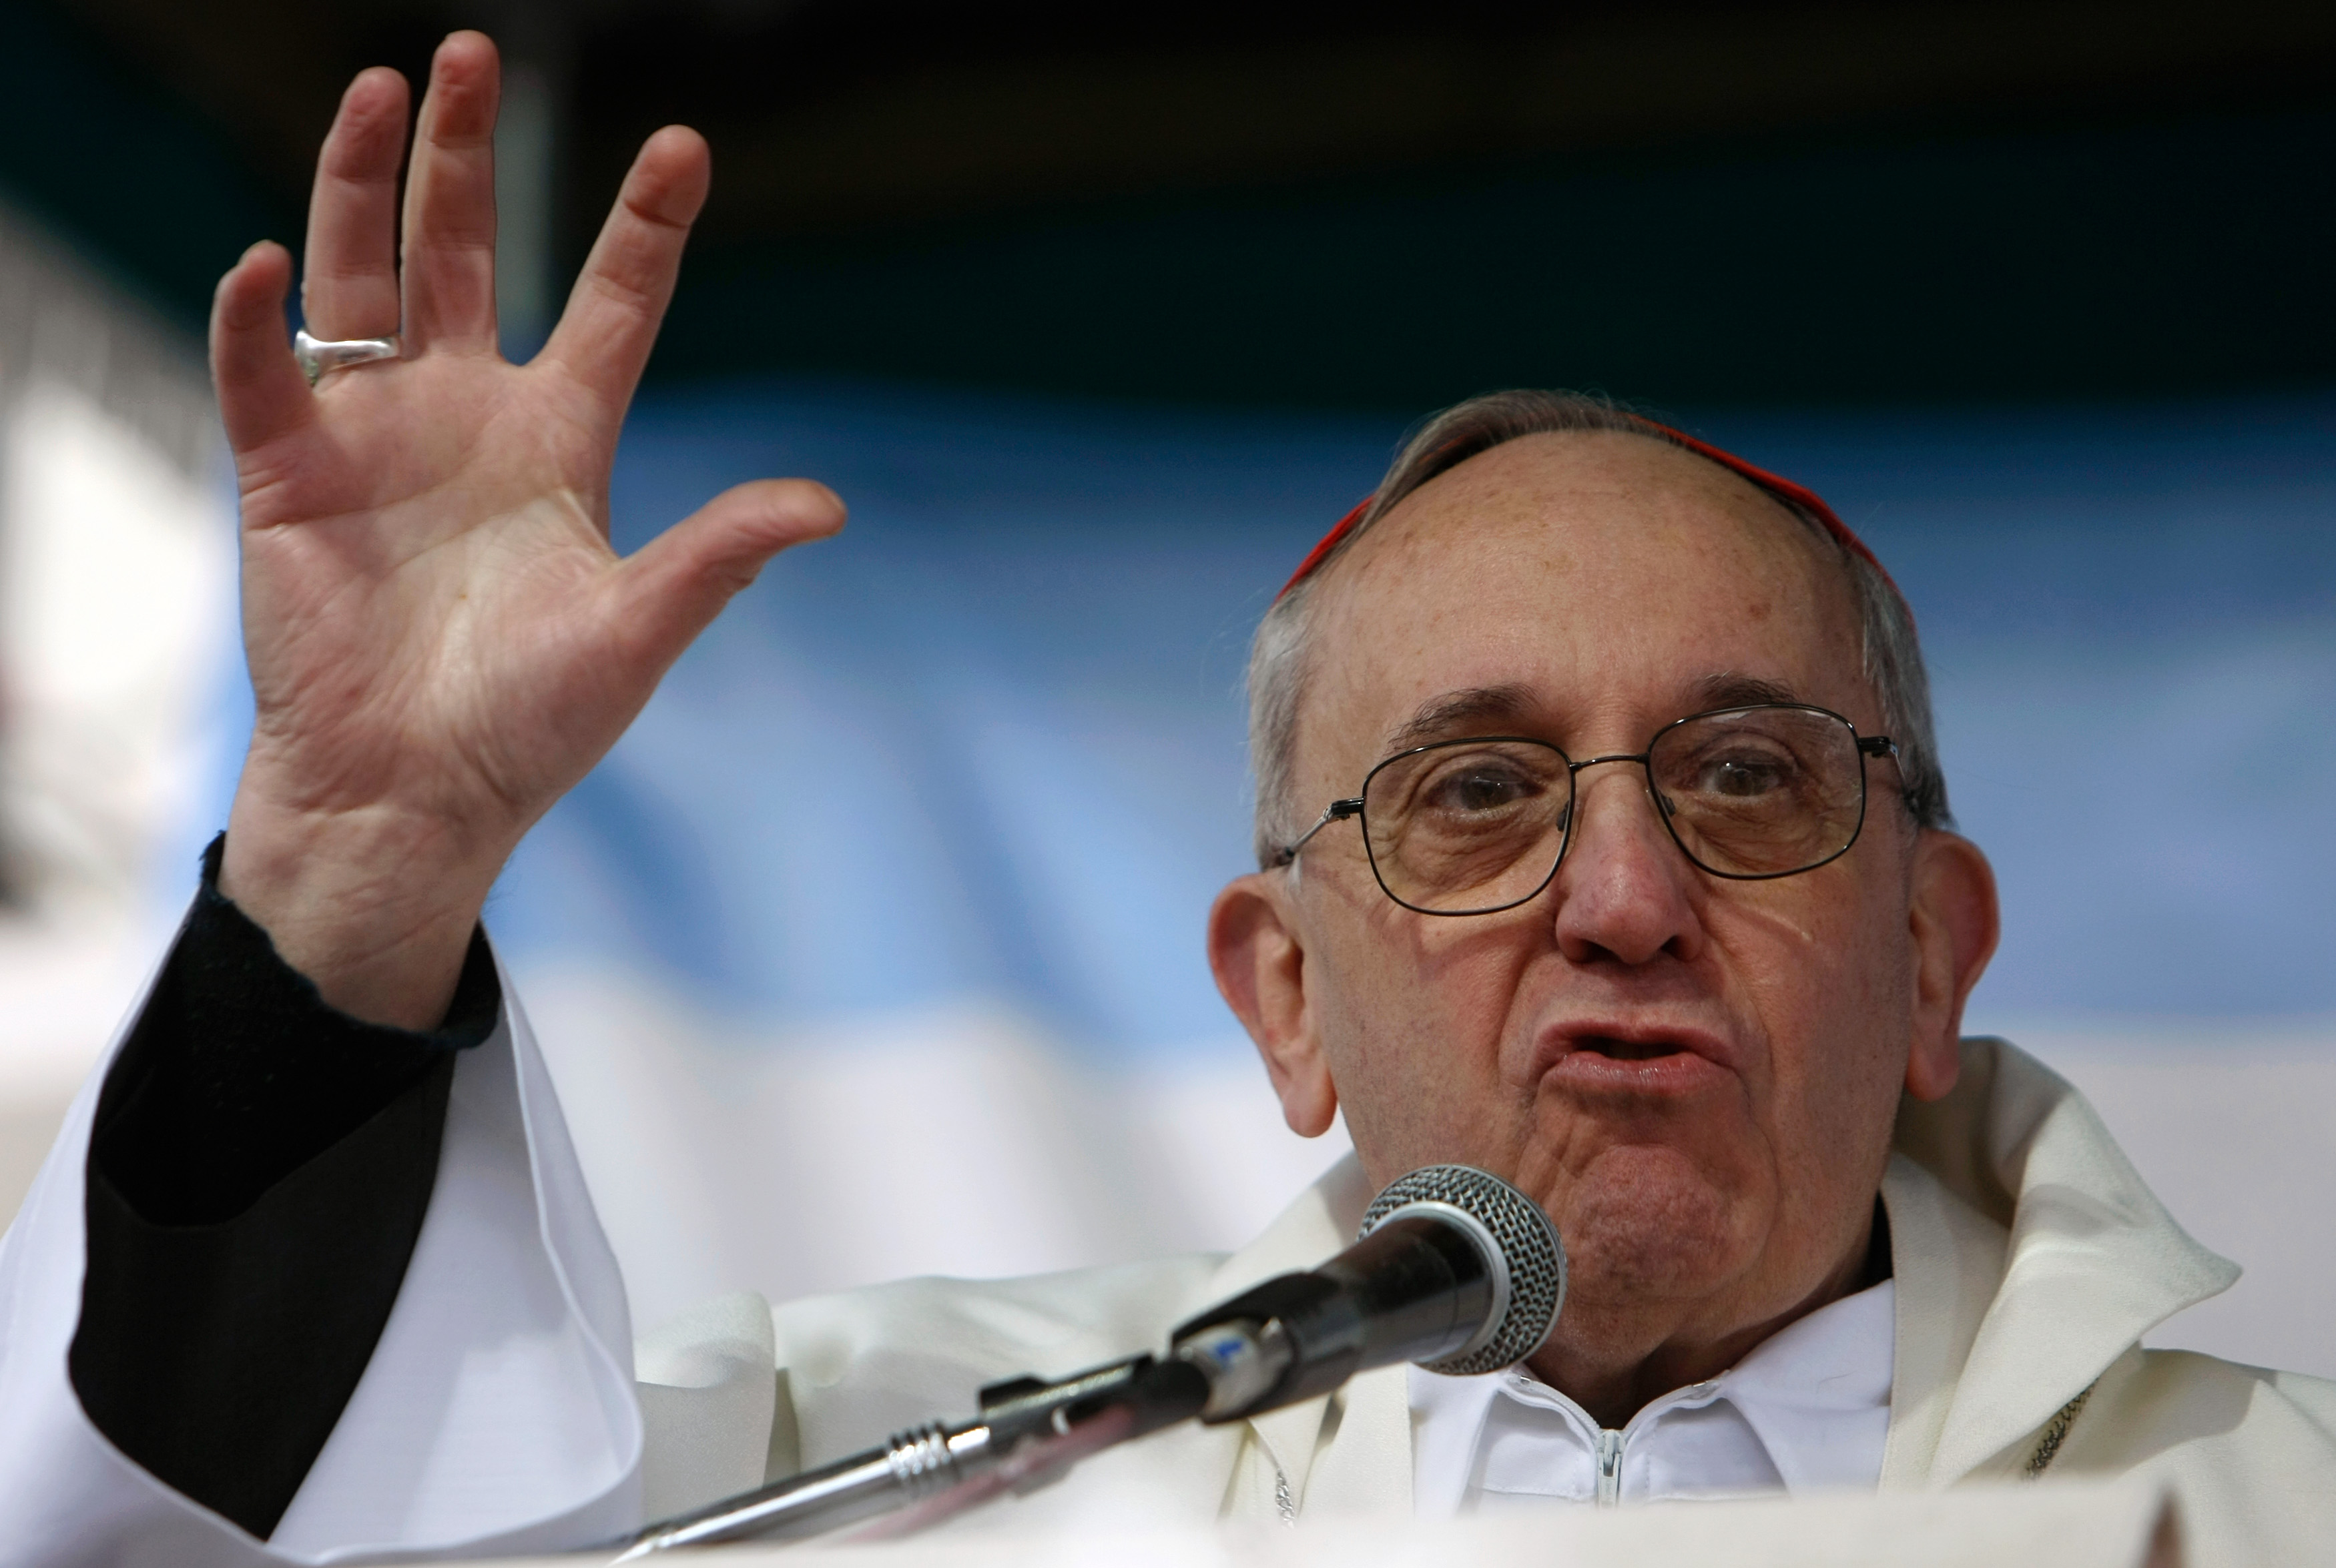 Pope Francis on his world tour